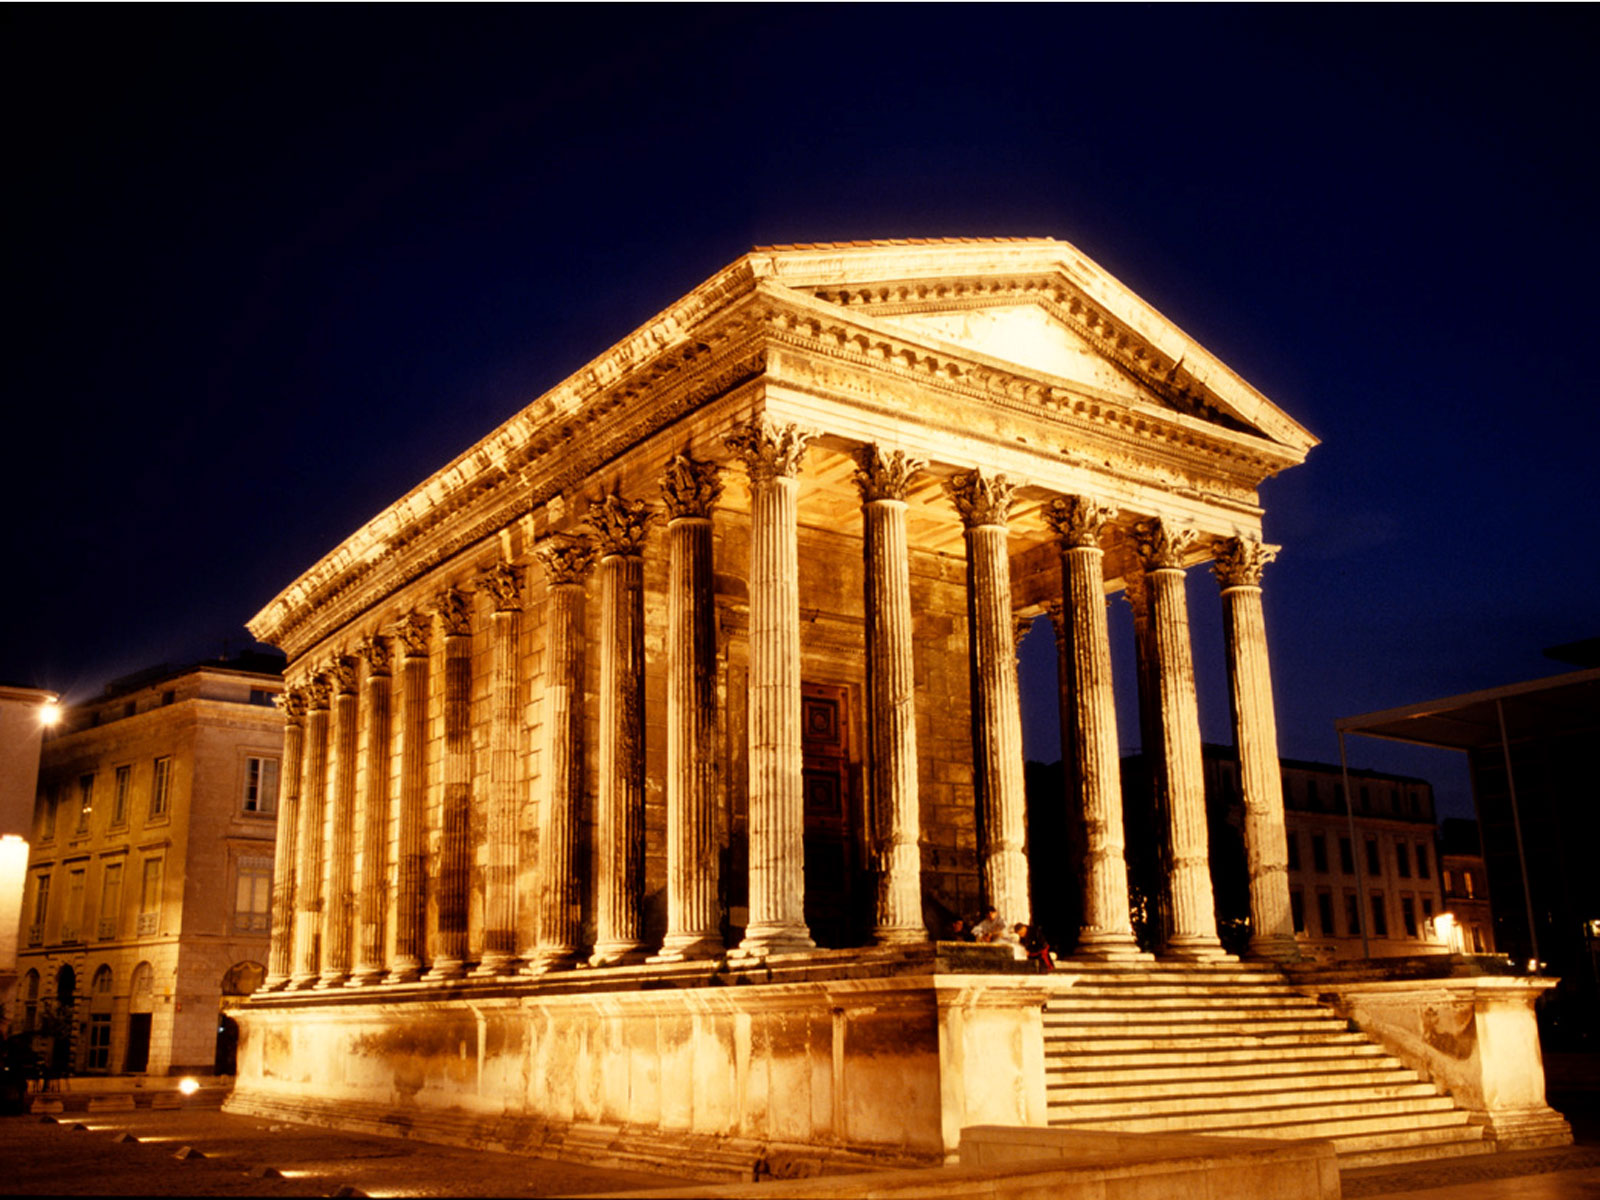 maison-caree-is-an-ancient-building-in-nimes-and-it-is-secret-world